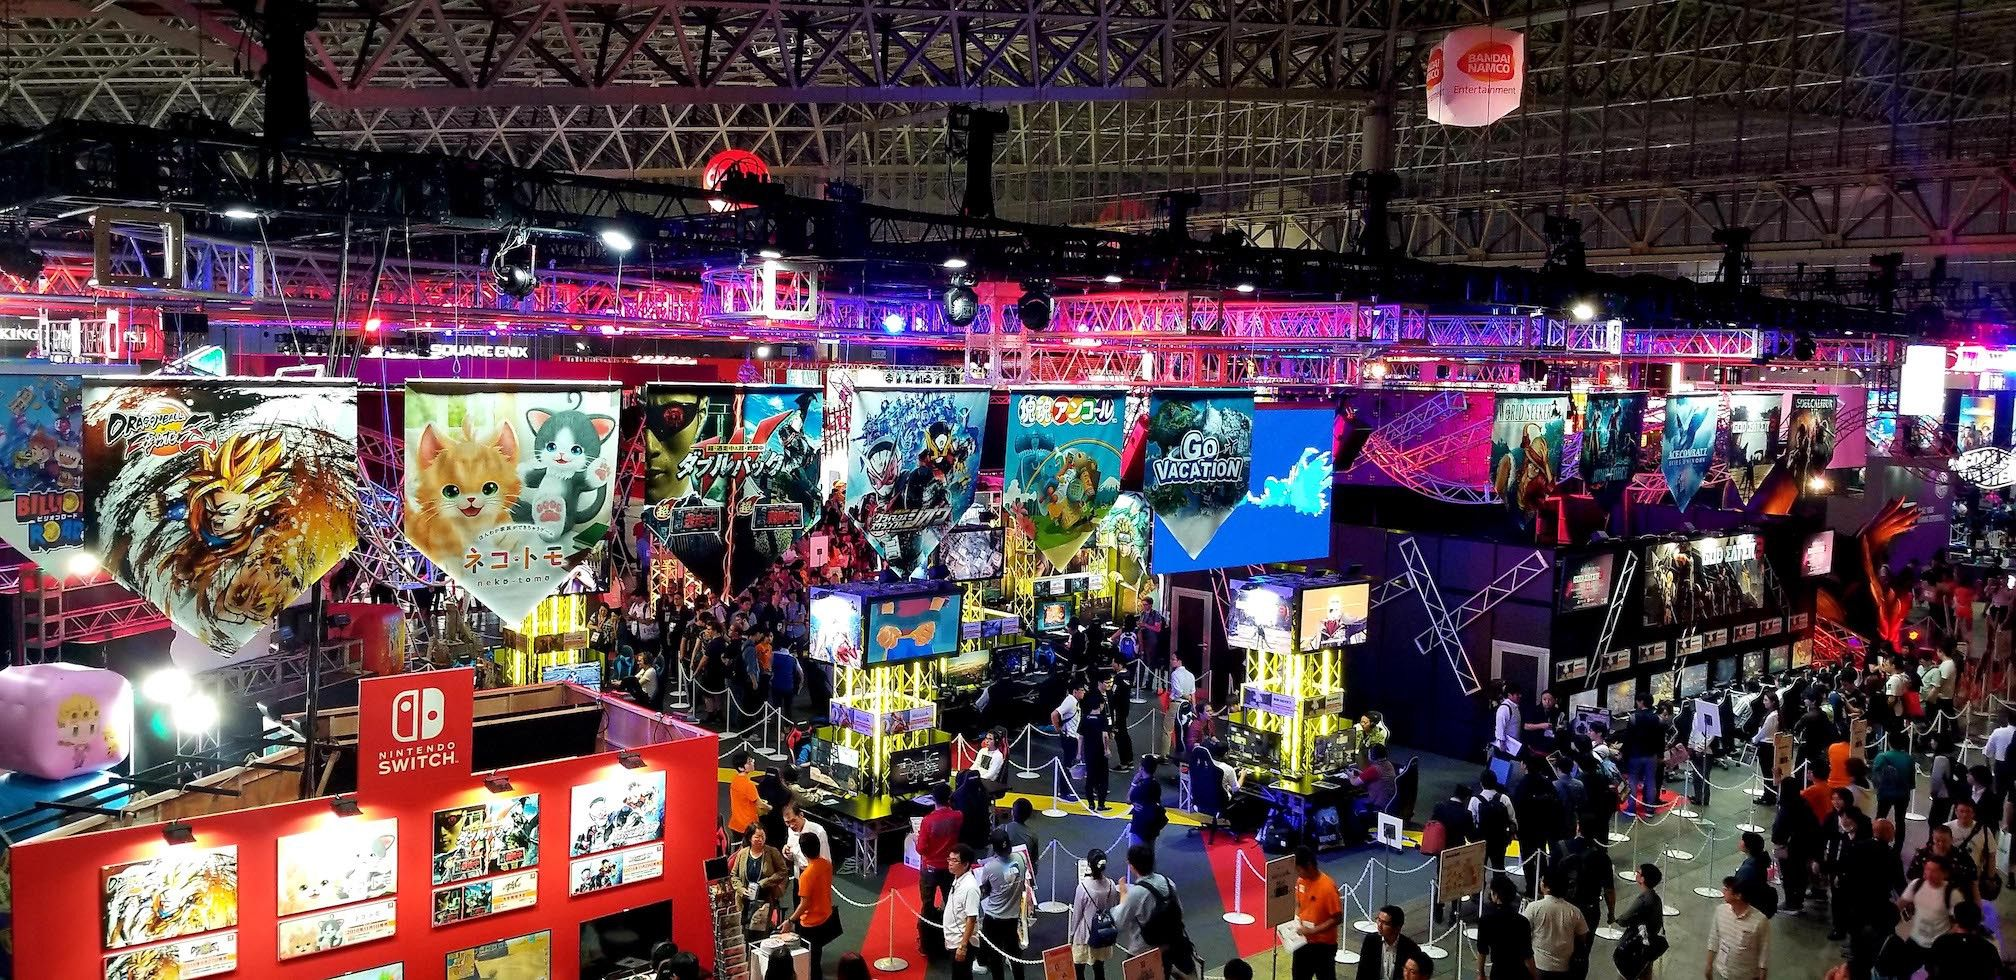 10 Biggest Gaming Conventions In The World (From Smallest To Largest)